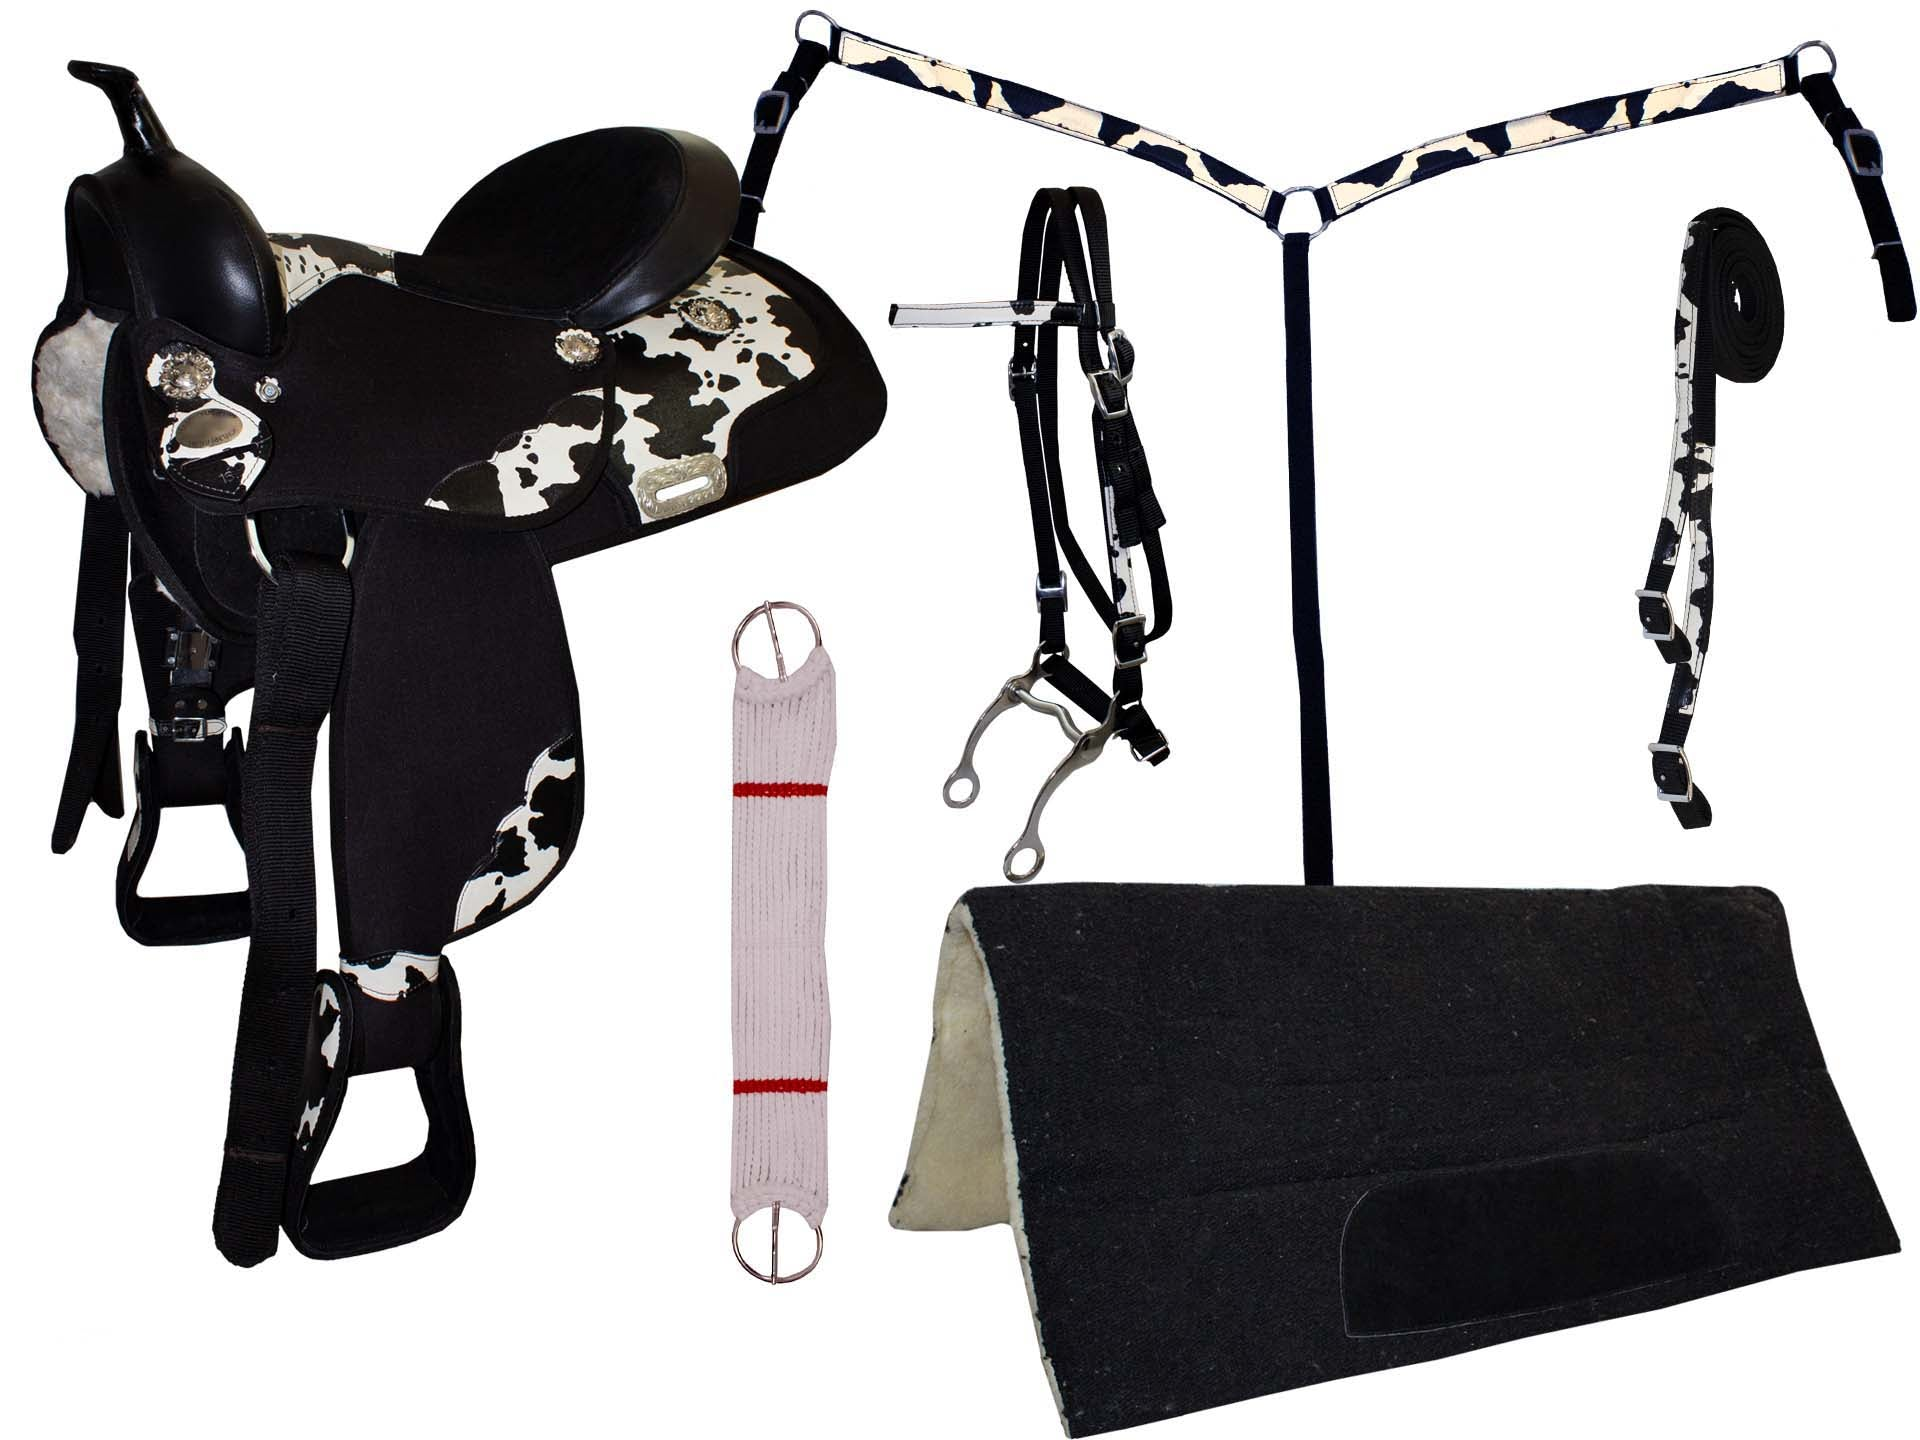 7 Item Synthetic Cow Print Western Saddle Set By Tahoe Derby Originals